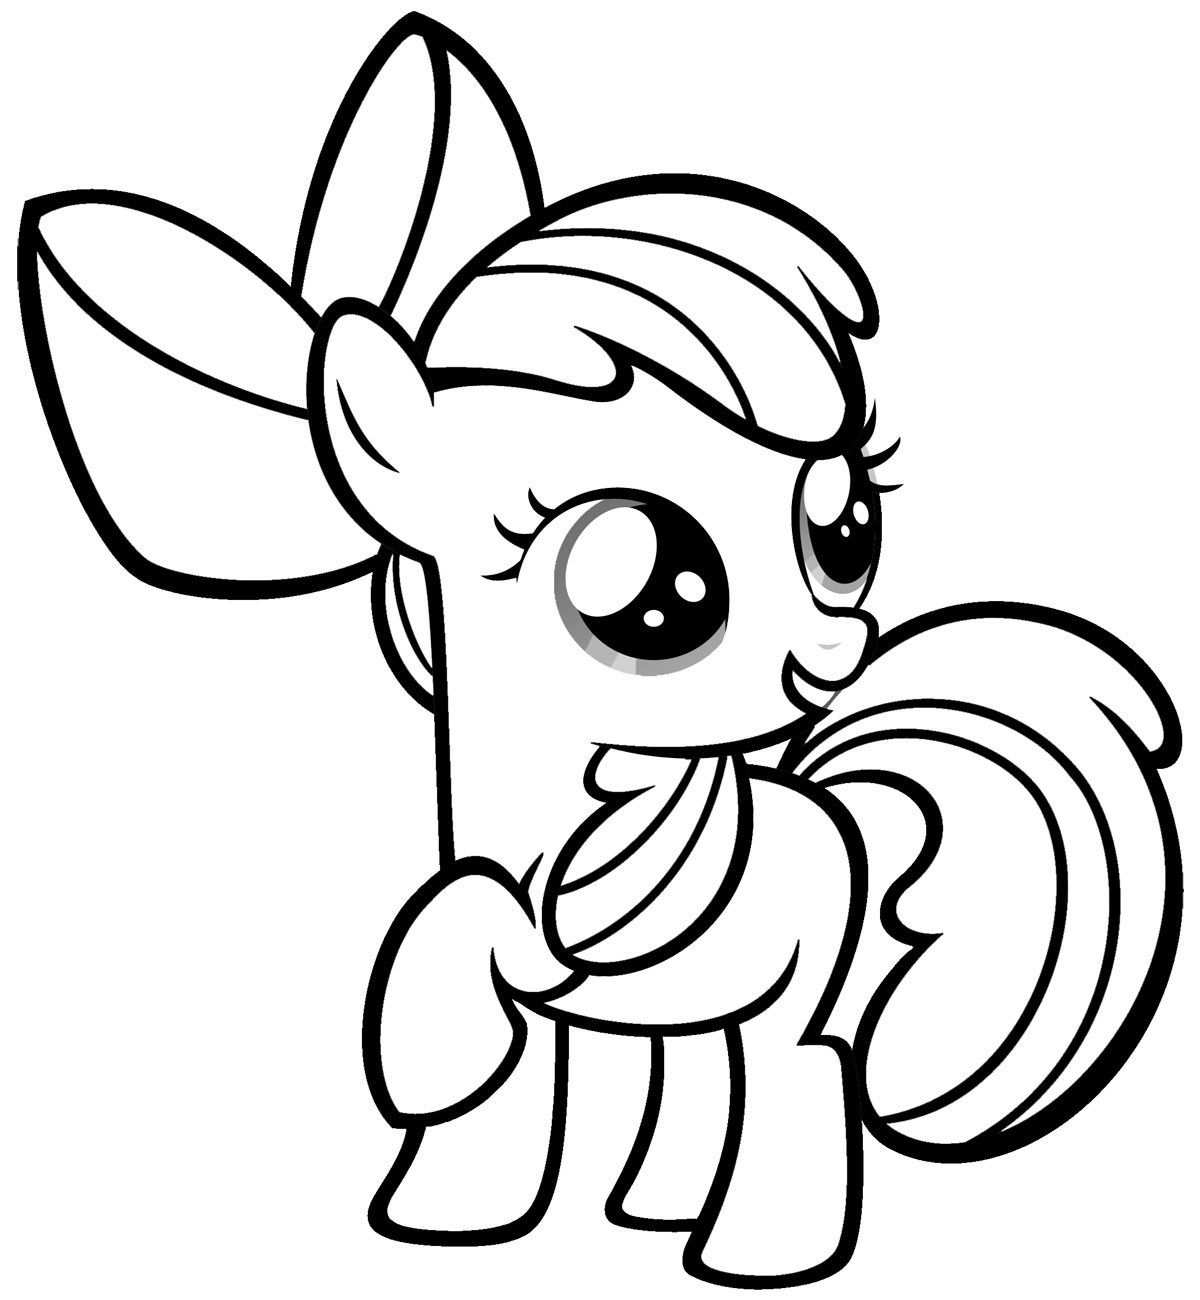 my little pony coloring pages to print free printable my little pony coloring pages for - Coloring Paages